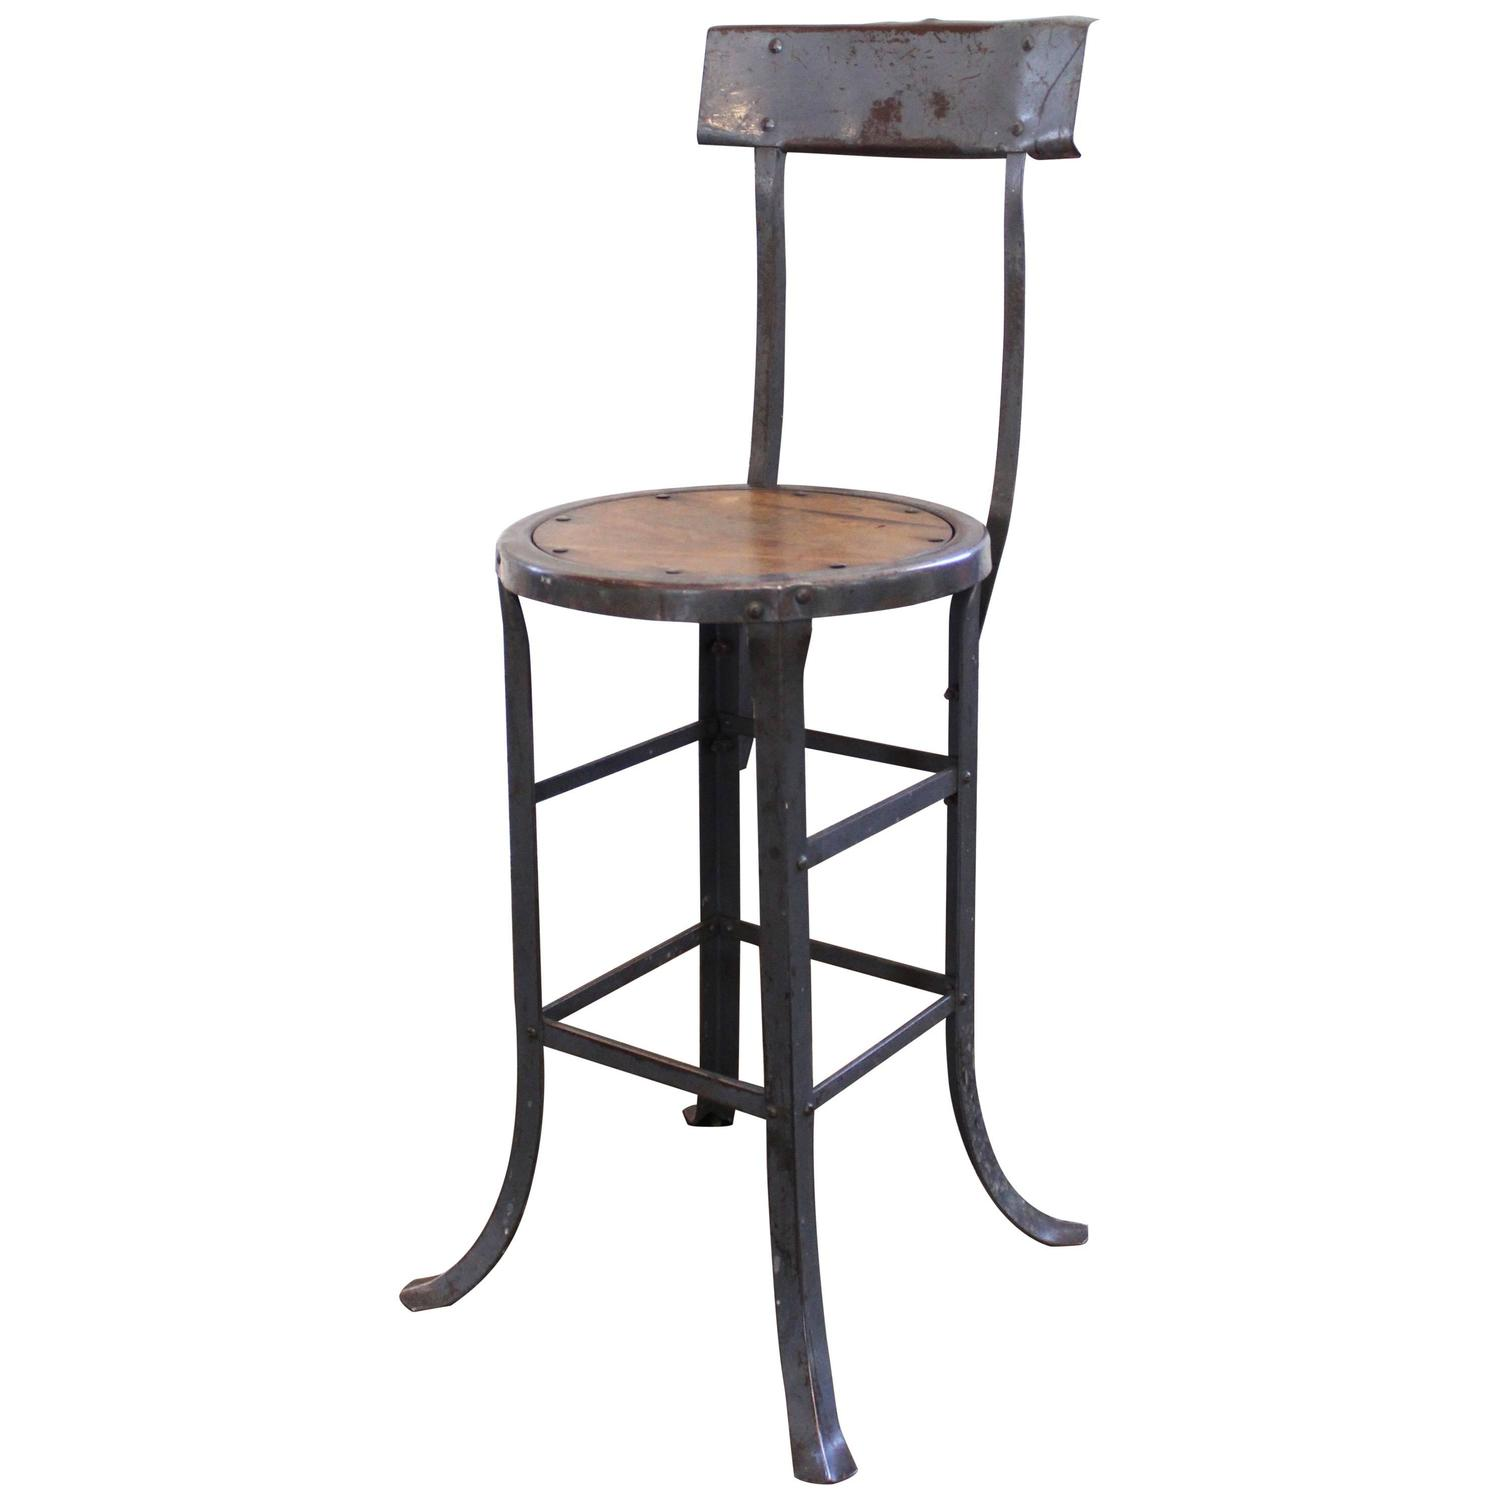 Vintage industrial rustic wood and metal bar kitchen for Bar stools for kitchen island